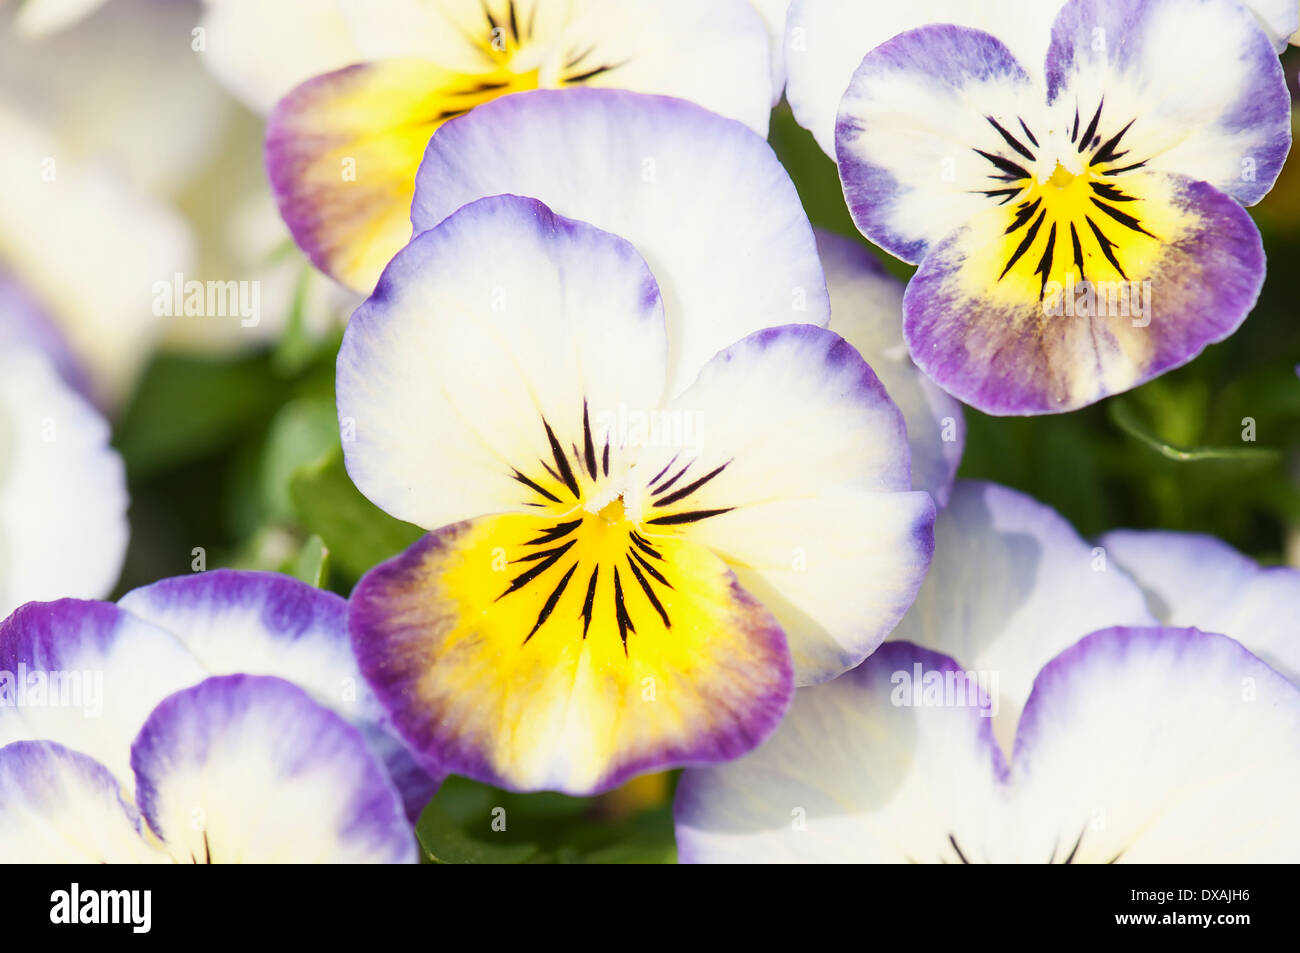 Viola, close up of the brightly coloured flowers. - Stock Image